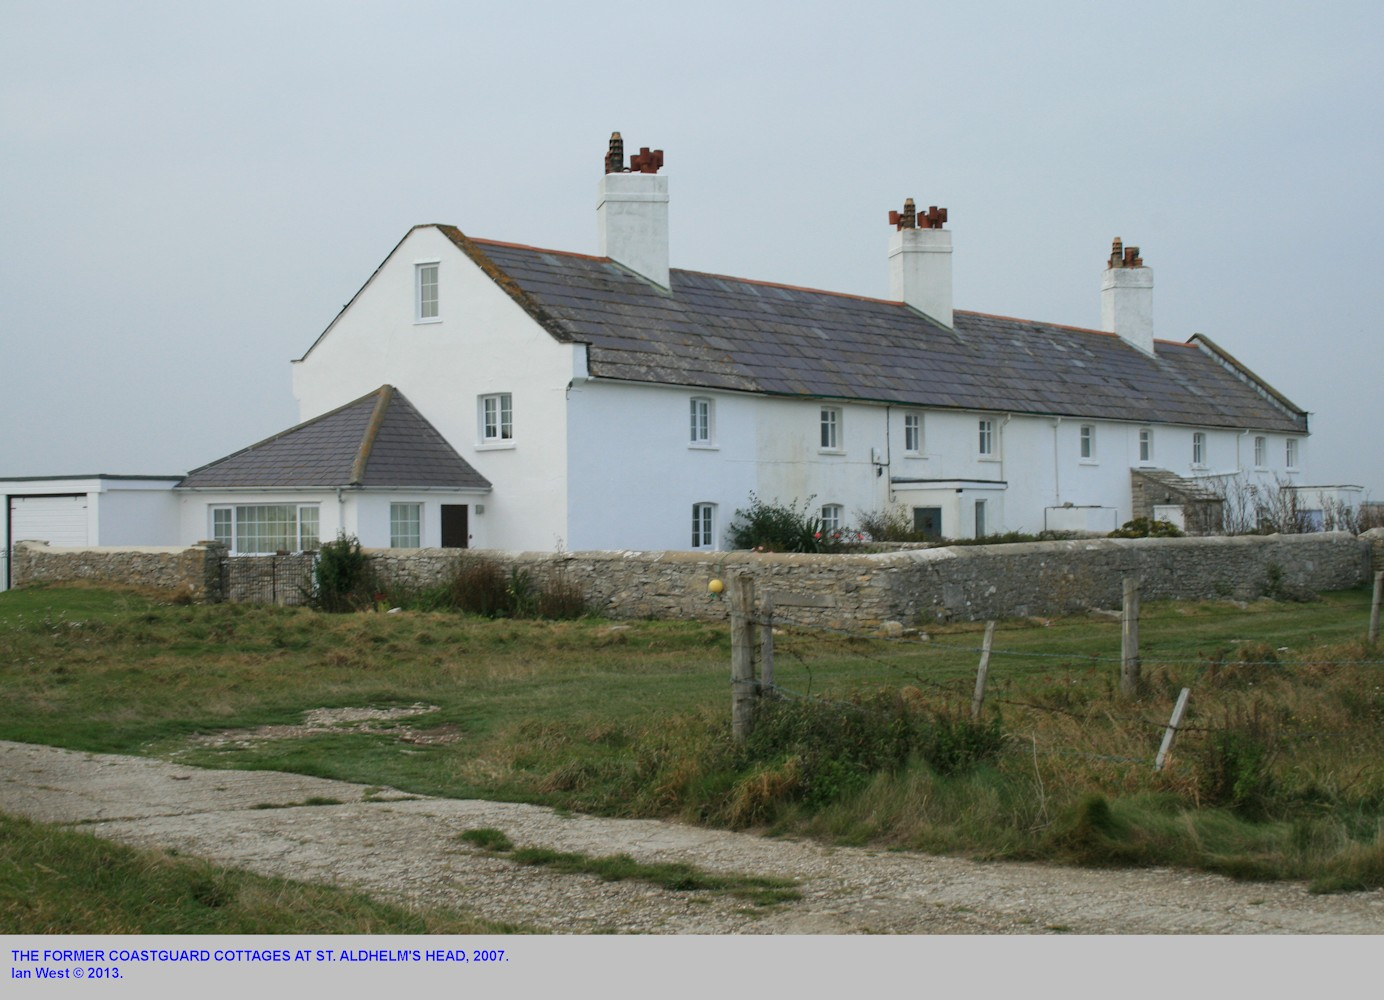 The former Coastguard Cottages at St. Aldhelm's Head, as seen in October 2007